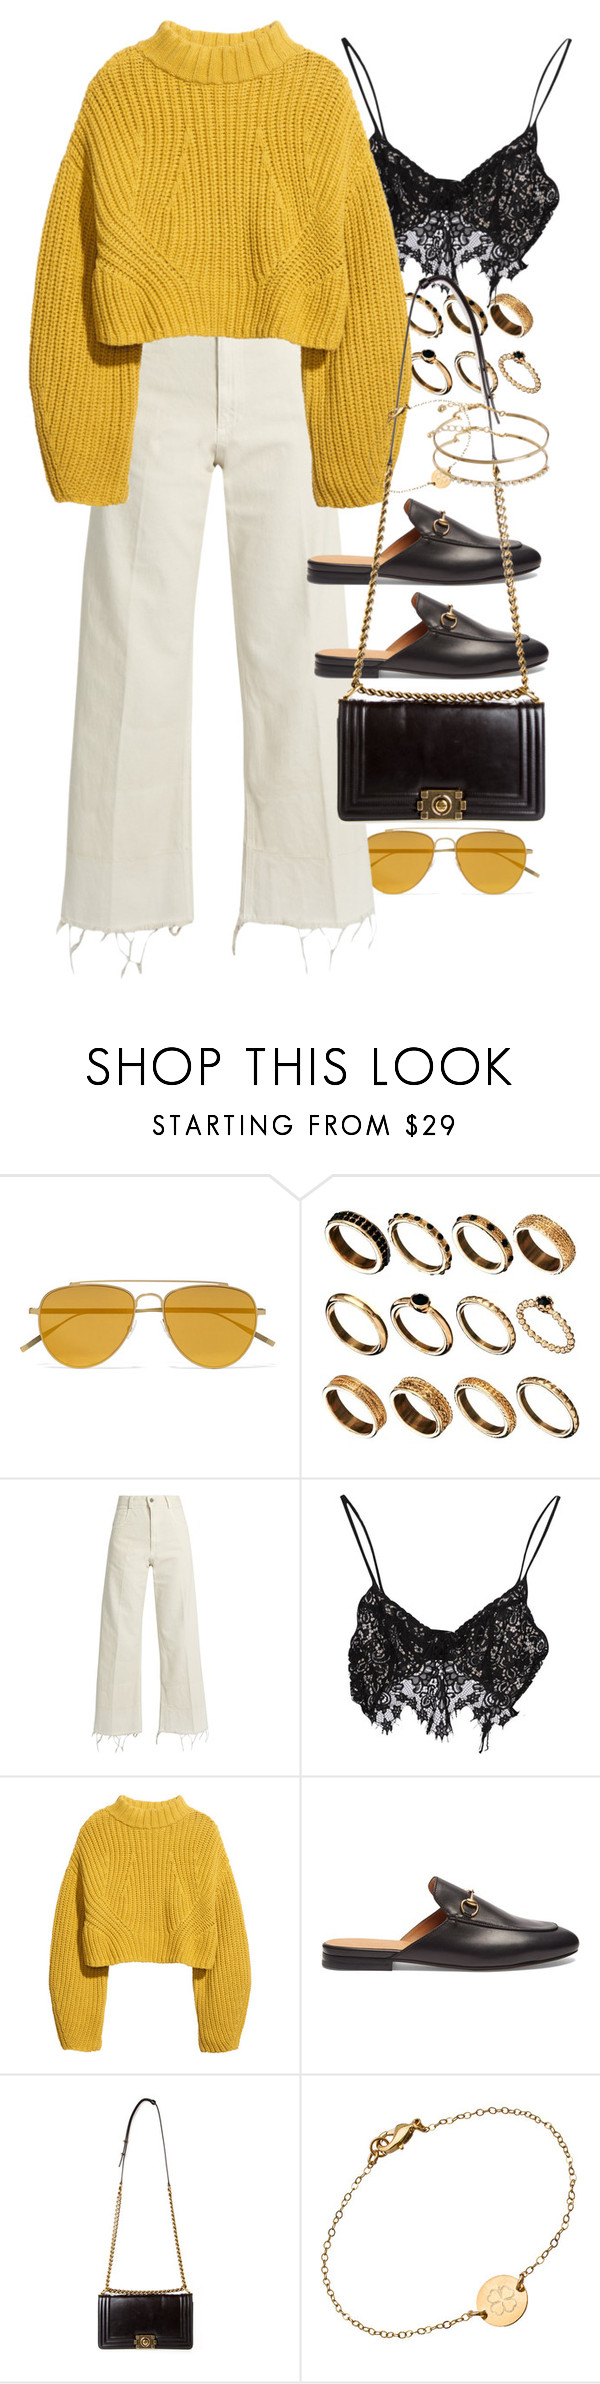 """Untitled #10461"" by nikka-phillips ❤ liked on Polyvore featuring Tomas Maier, ASOS, Rachel Comey, For Love & Lemons, H&M, Gucci, Chanel and Miriam Merenfeld"